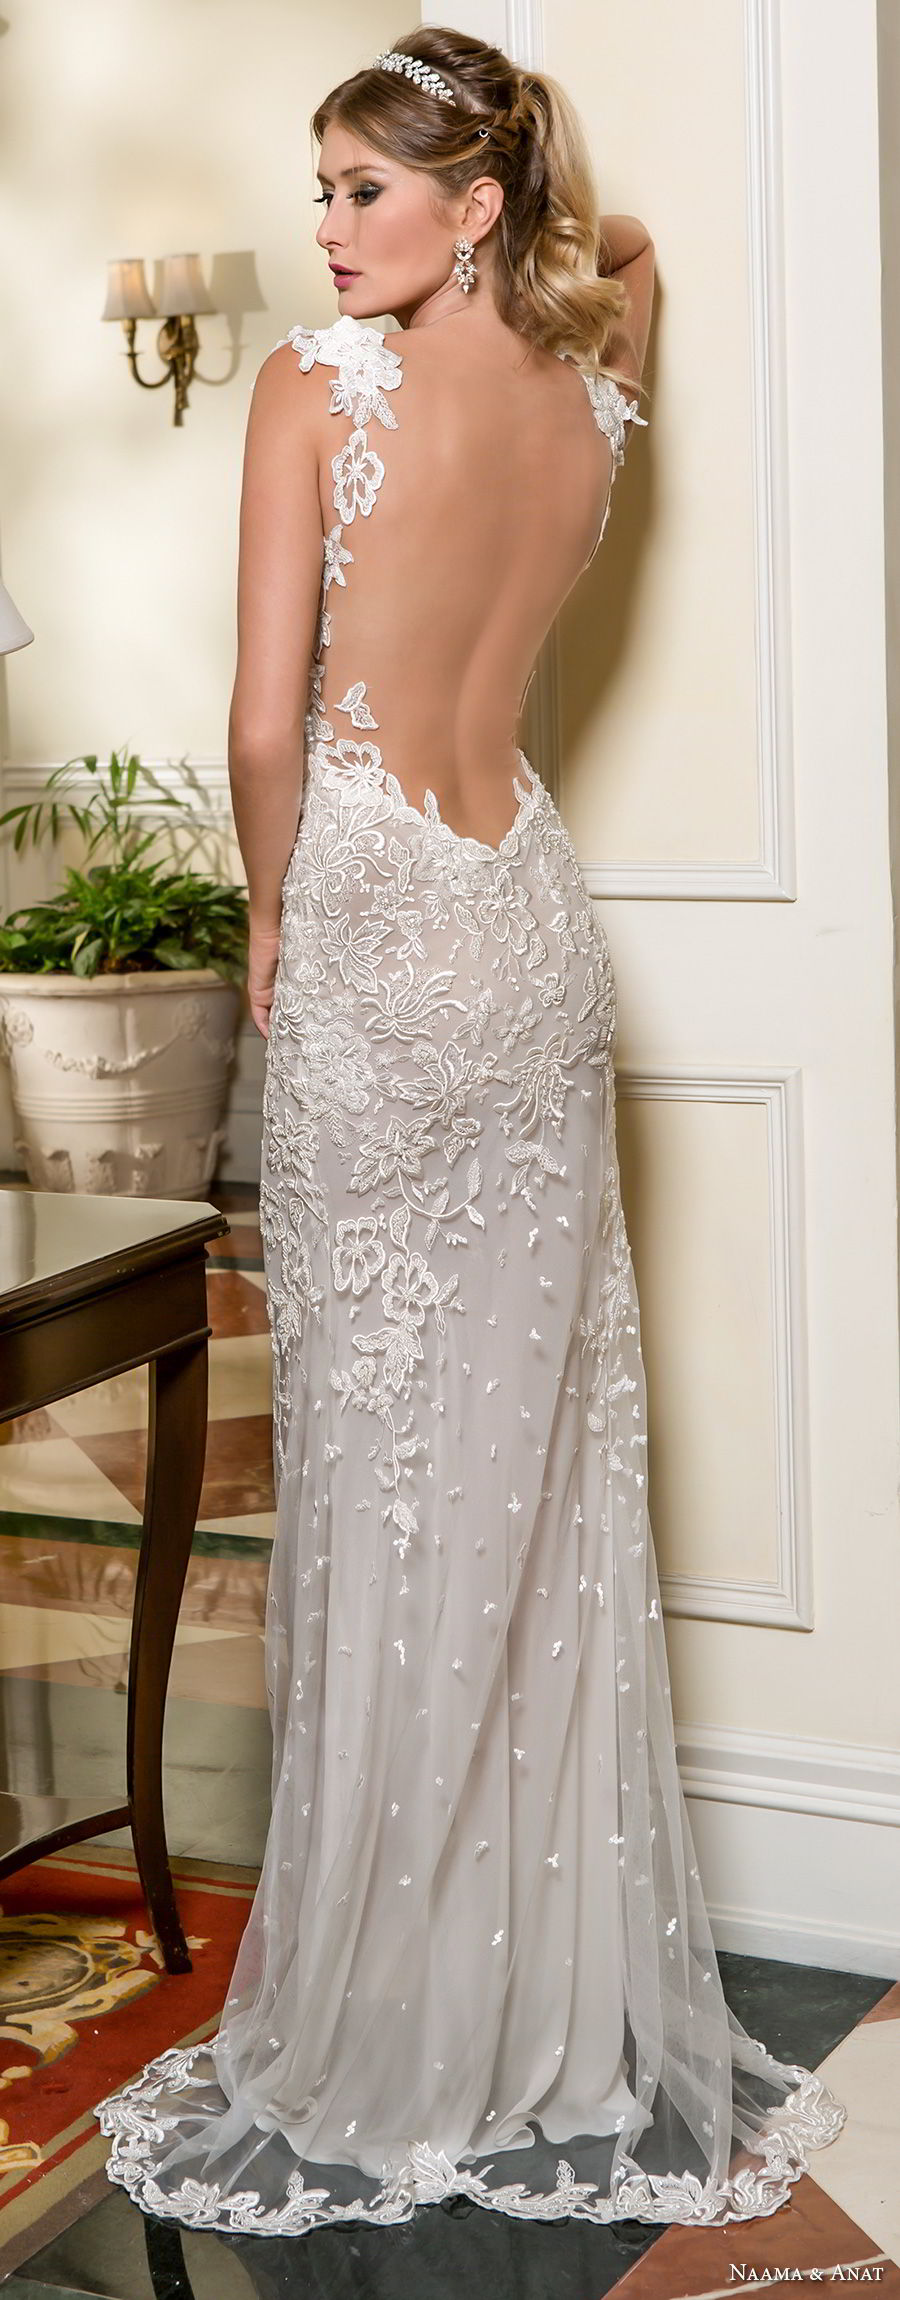 naama and anat fall 2018 bridal cap sleeves sweetheart neckline full embellishment elegant fit and flare wedding dress low open back sweep train (5) bv